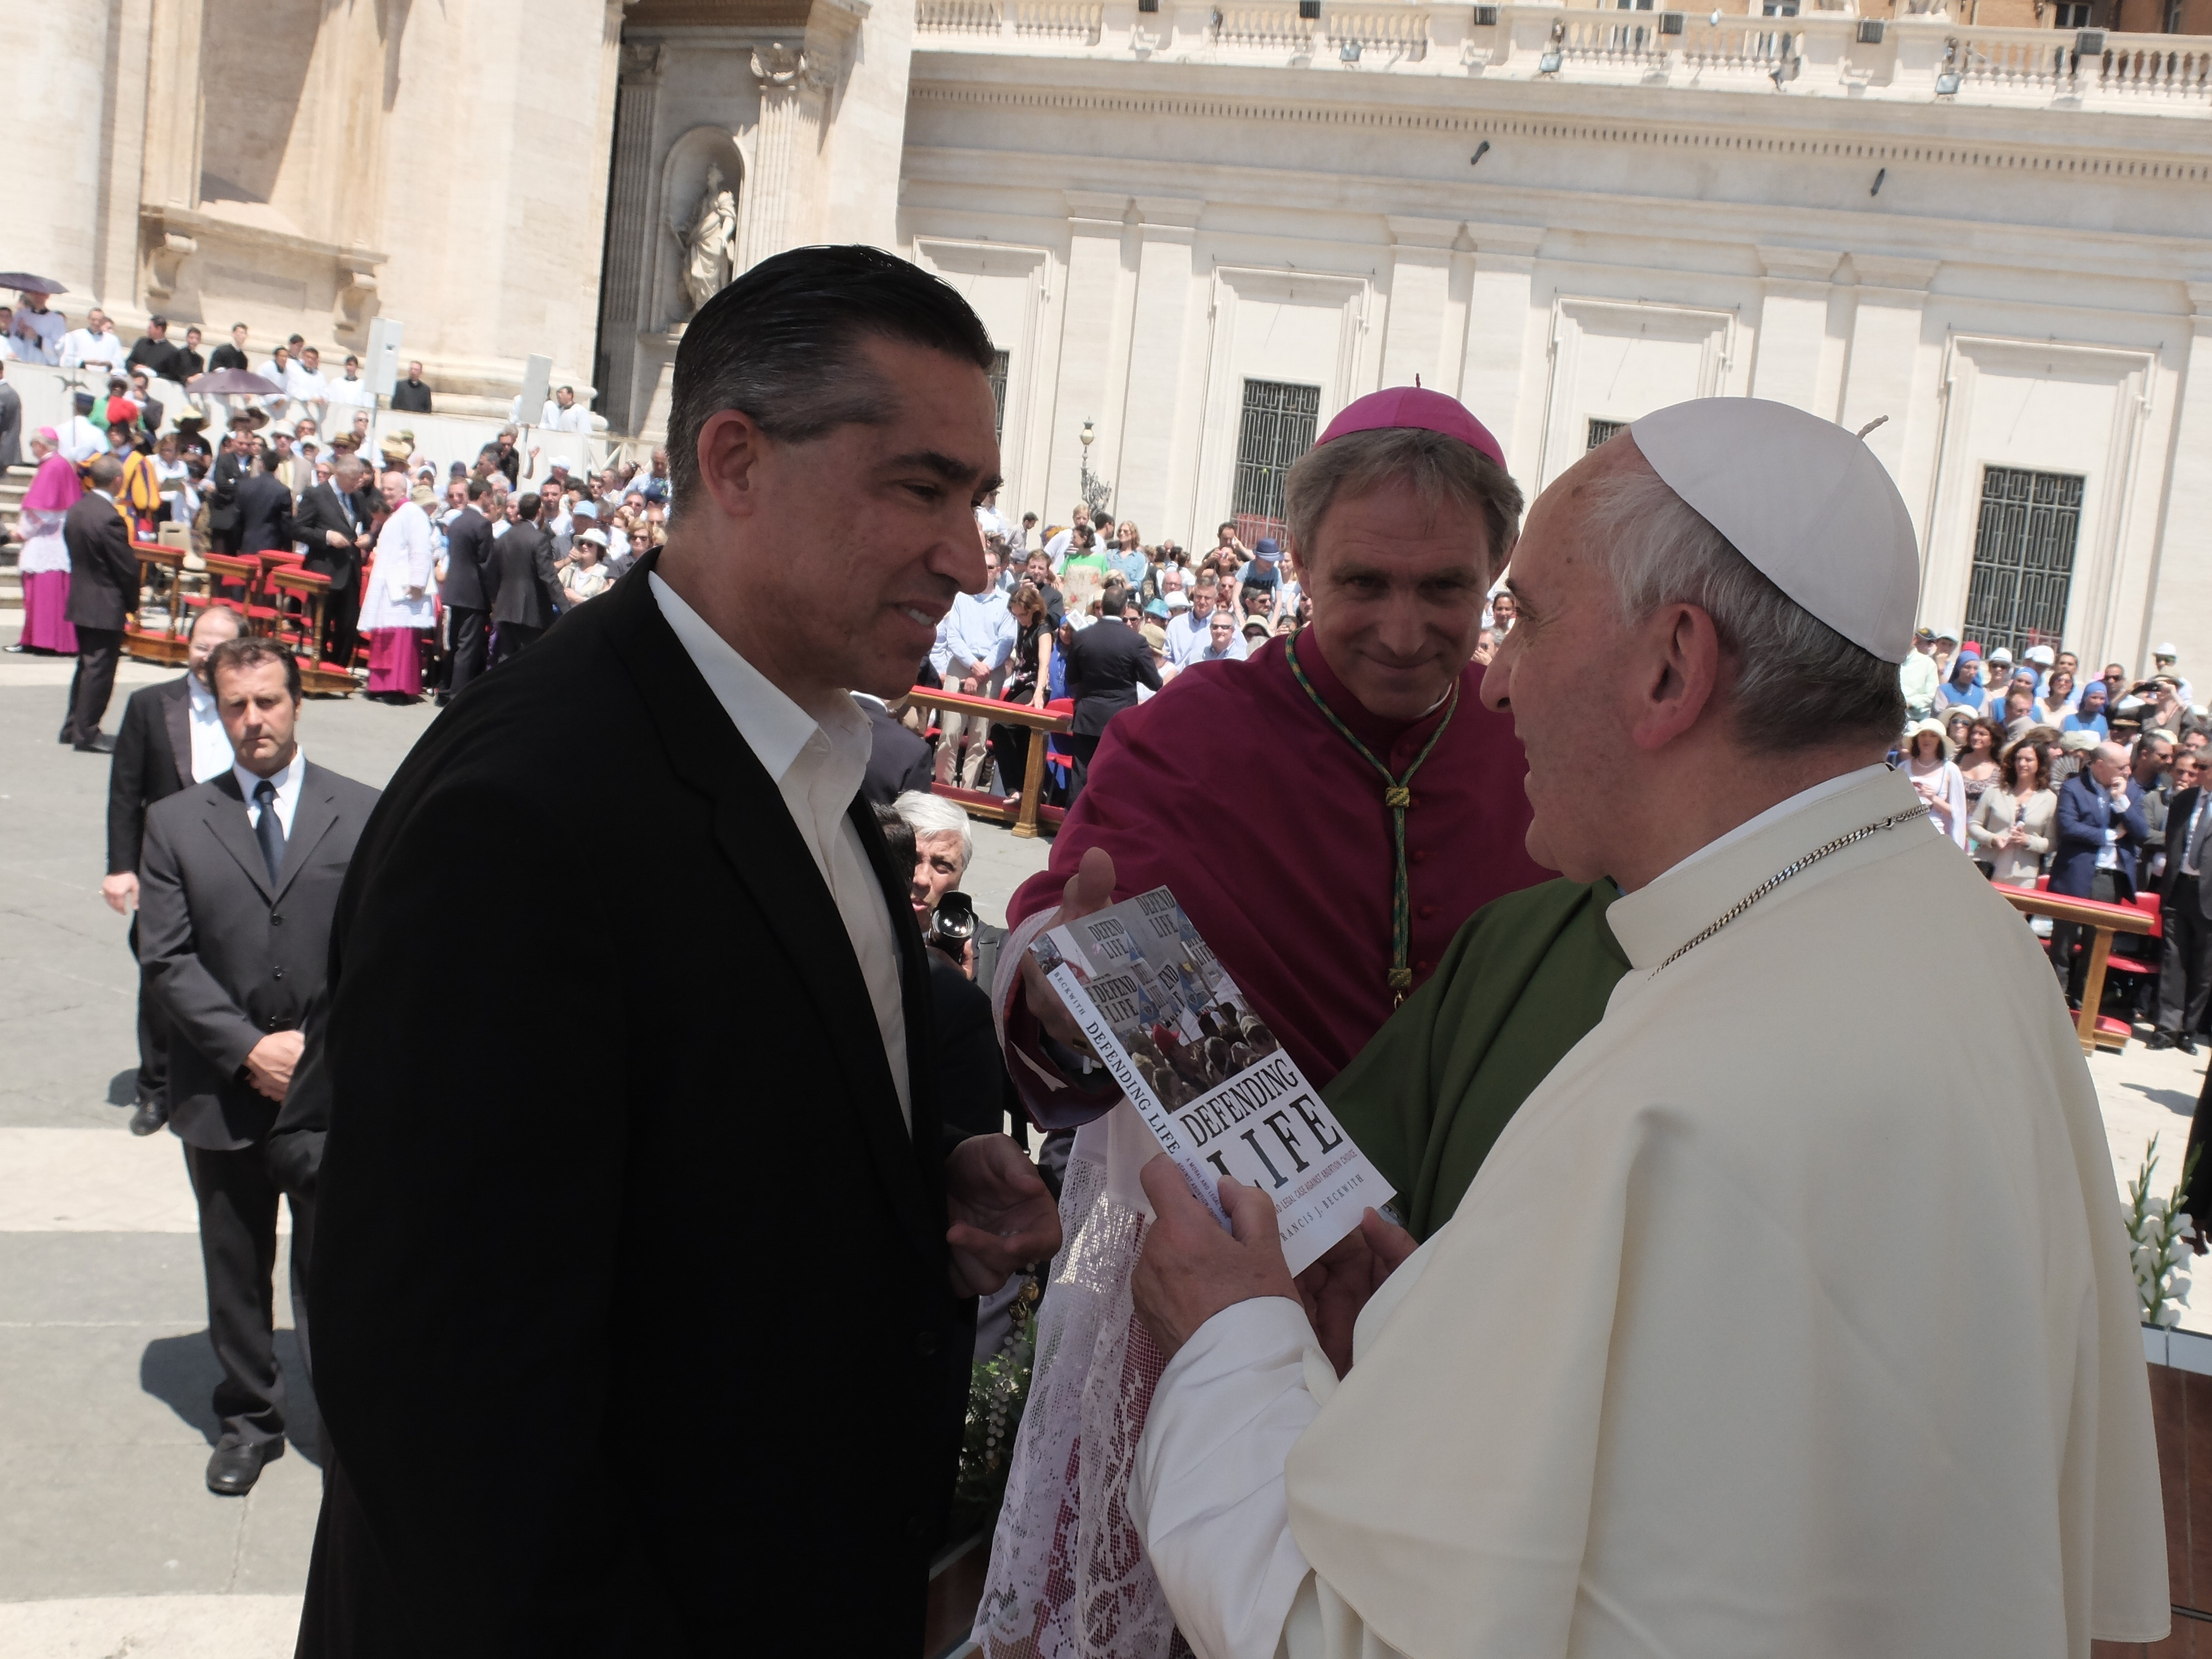 Dr. Beckwith and Pope Francis